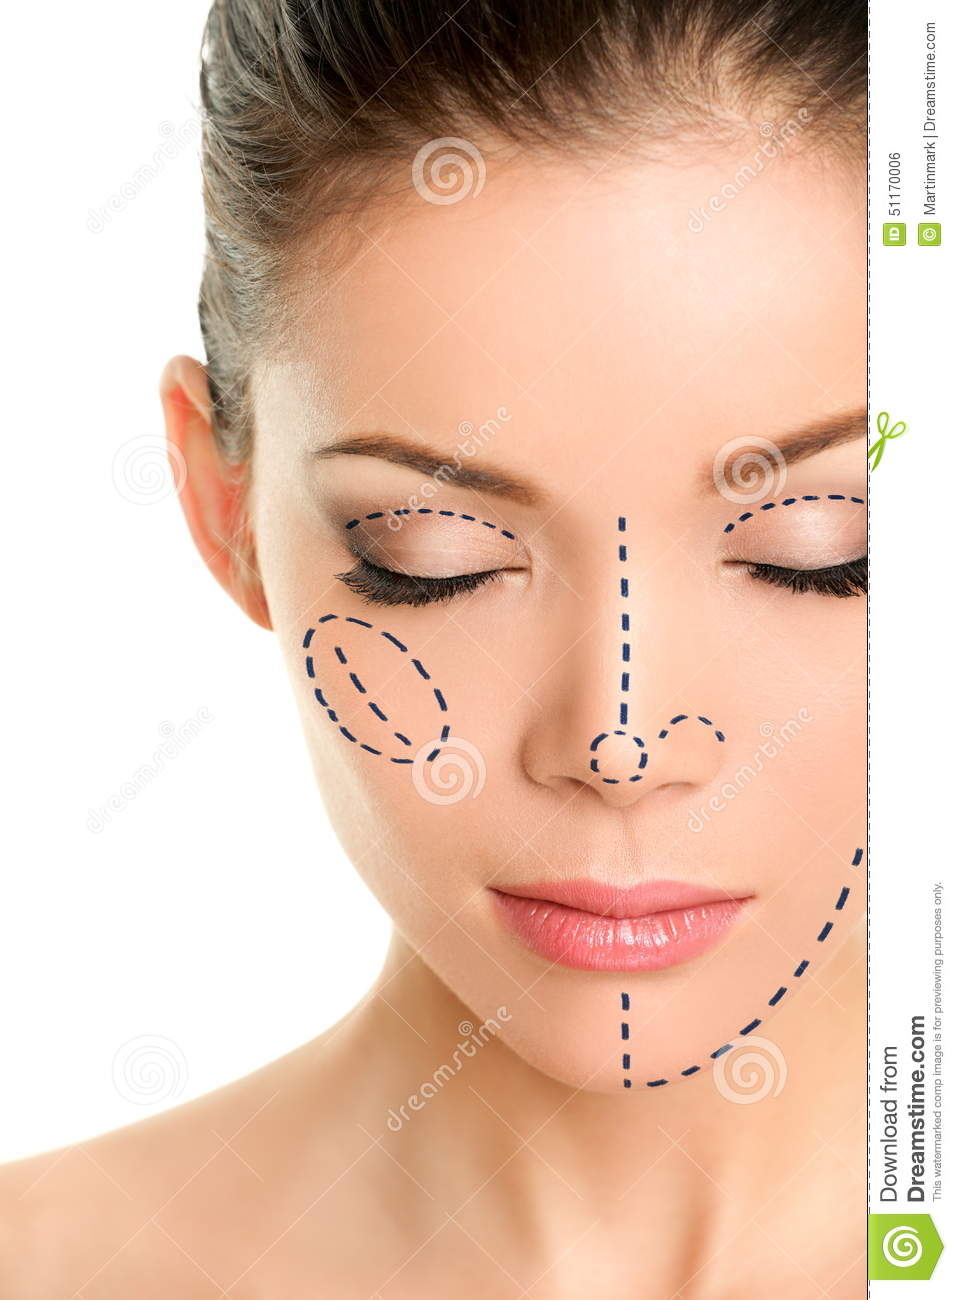 Download Plastic Surgery Lines On Asian Woman Face Stock Photo - Image of beauty, eyes: 51170006